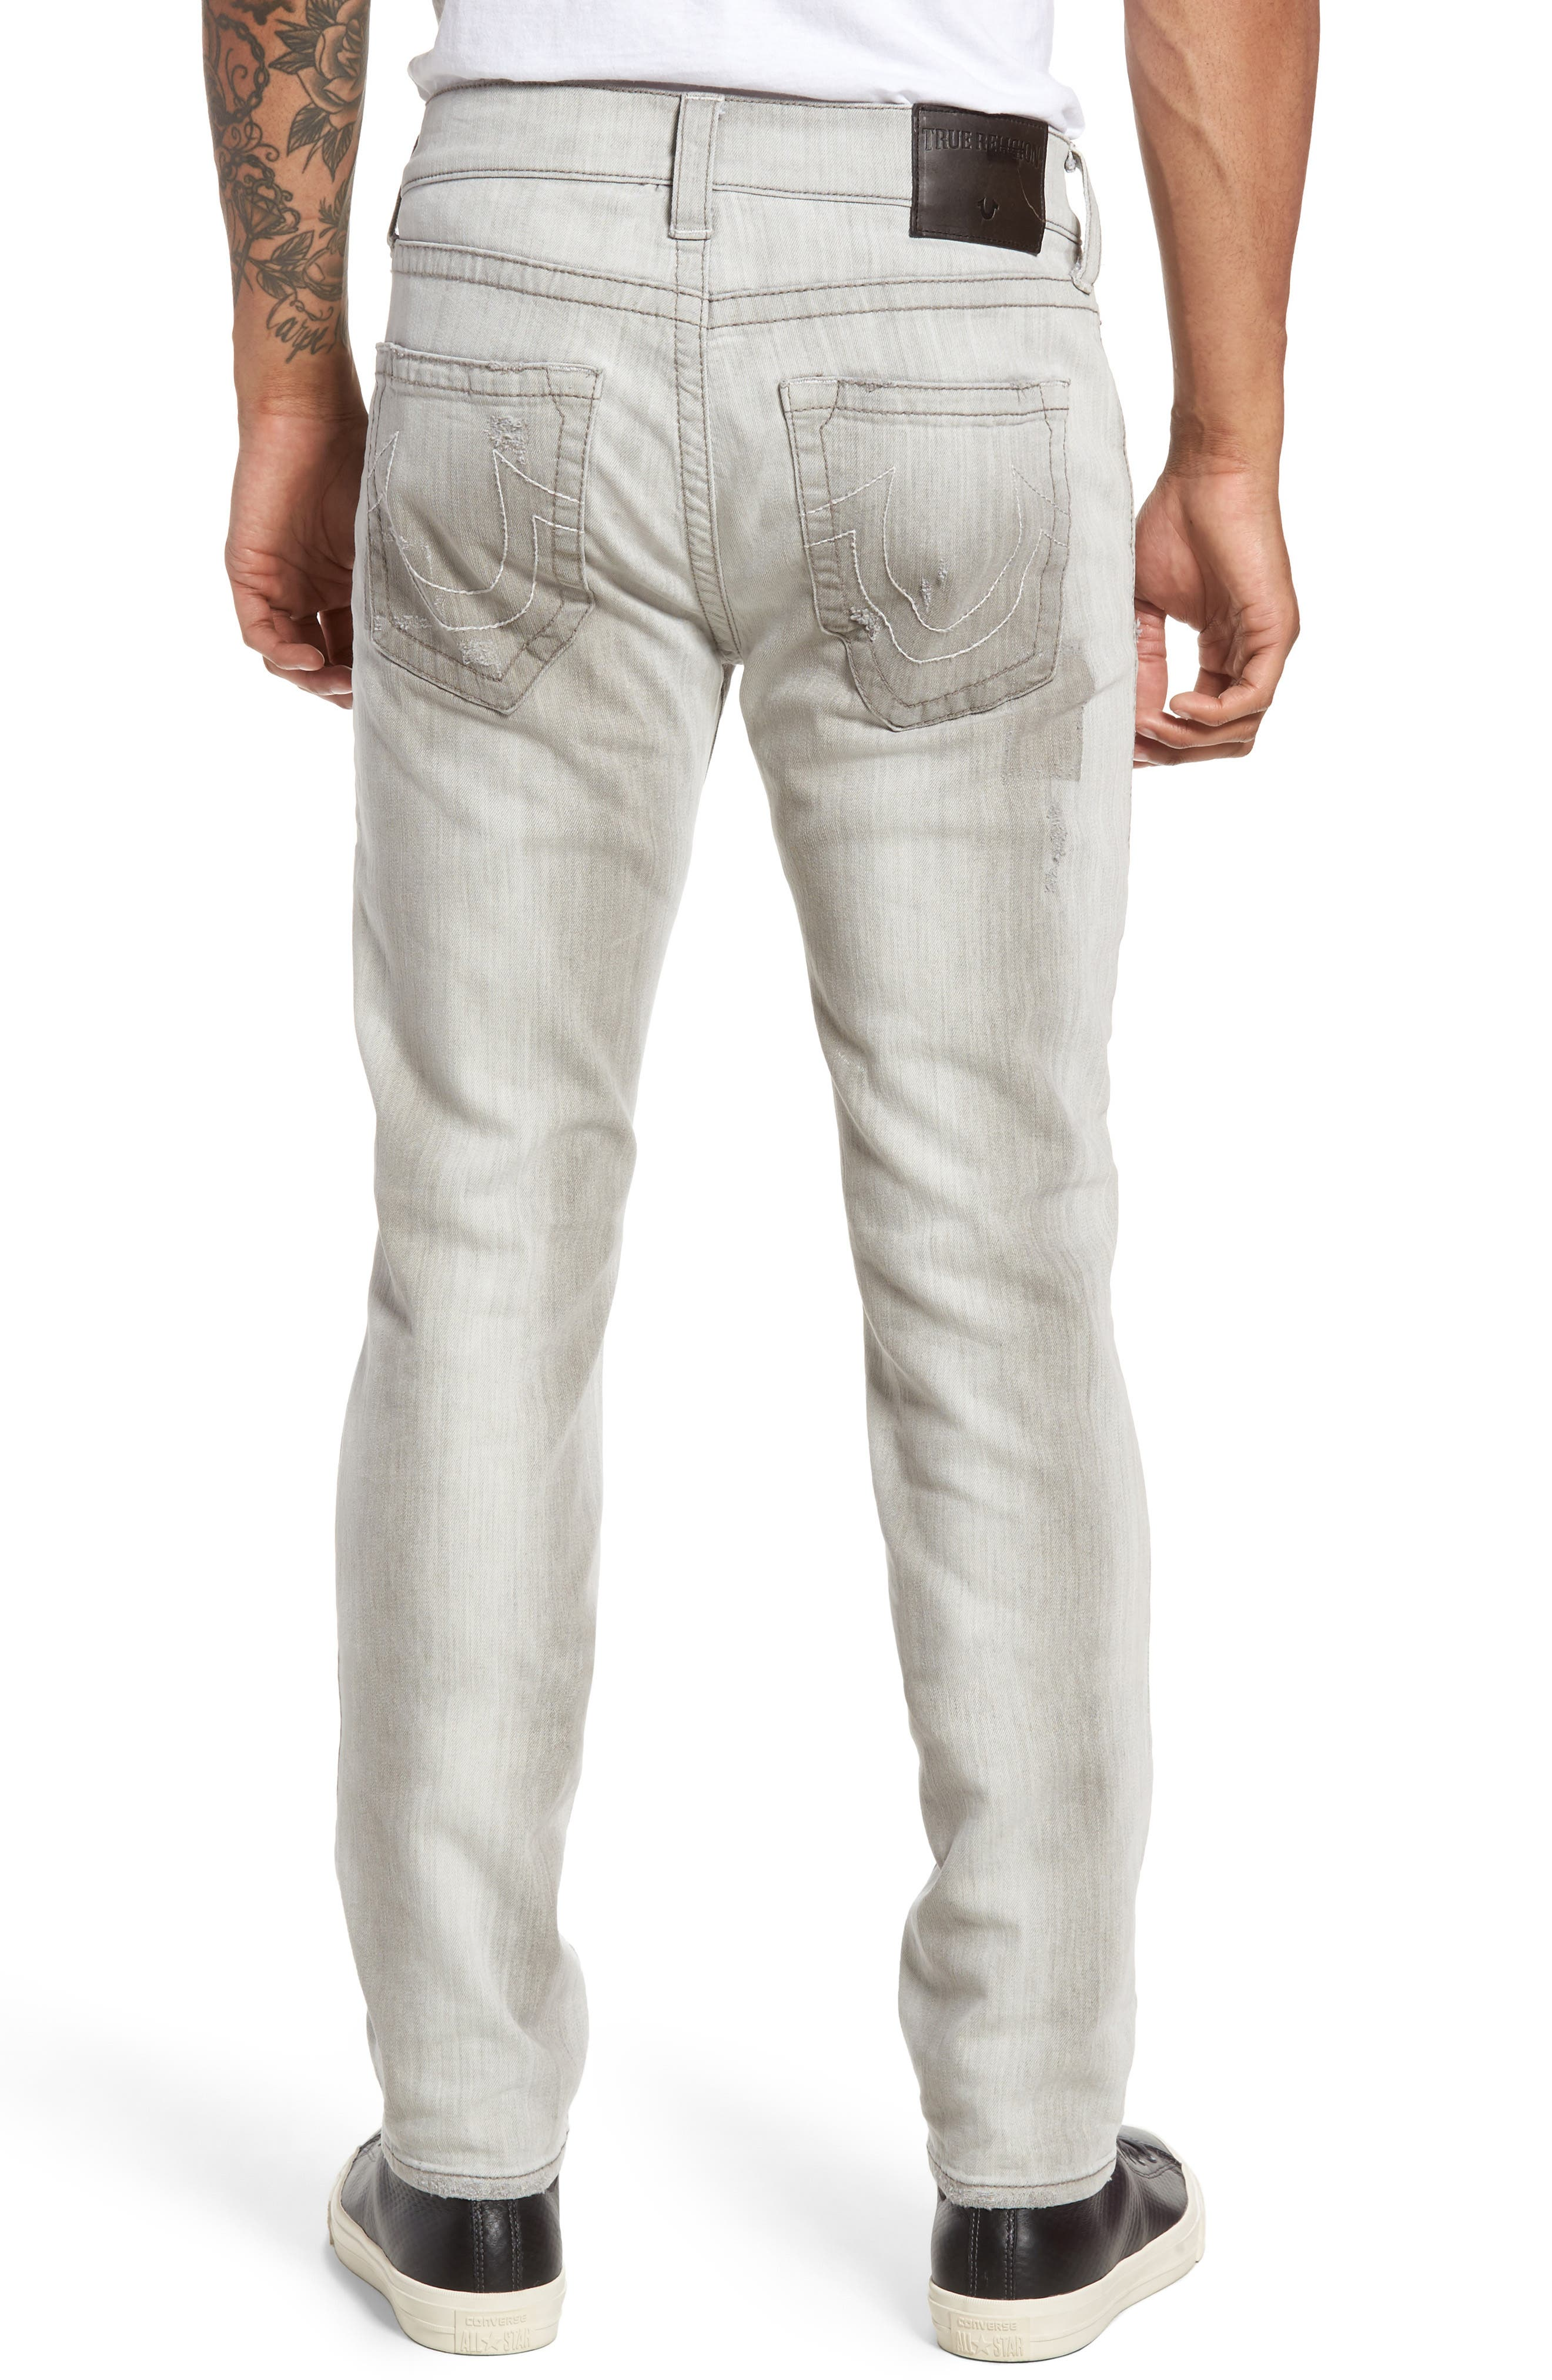 Rocco Skinny Fit Jeans,                             Alternate thumbnail 2, color,                             406